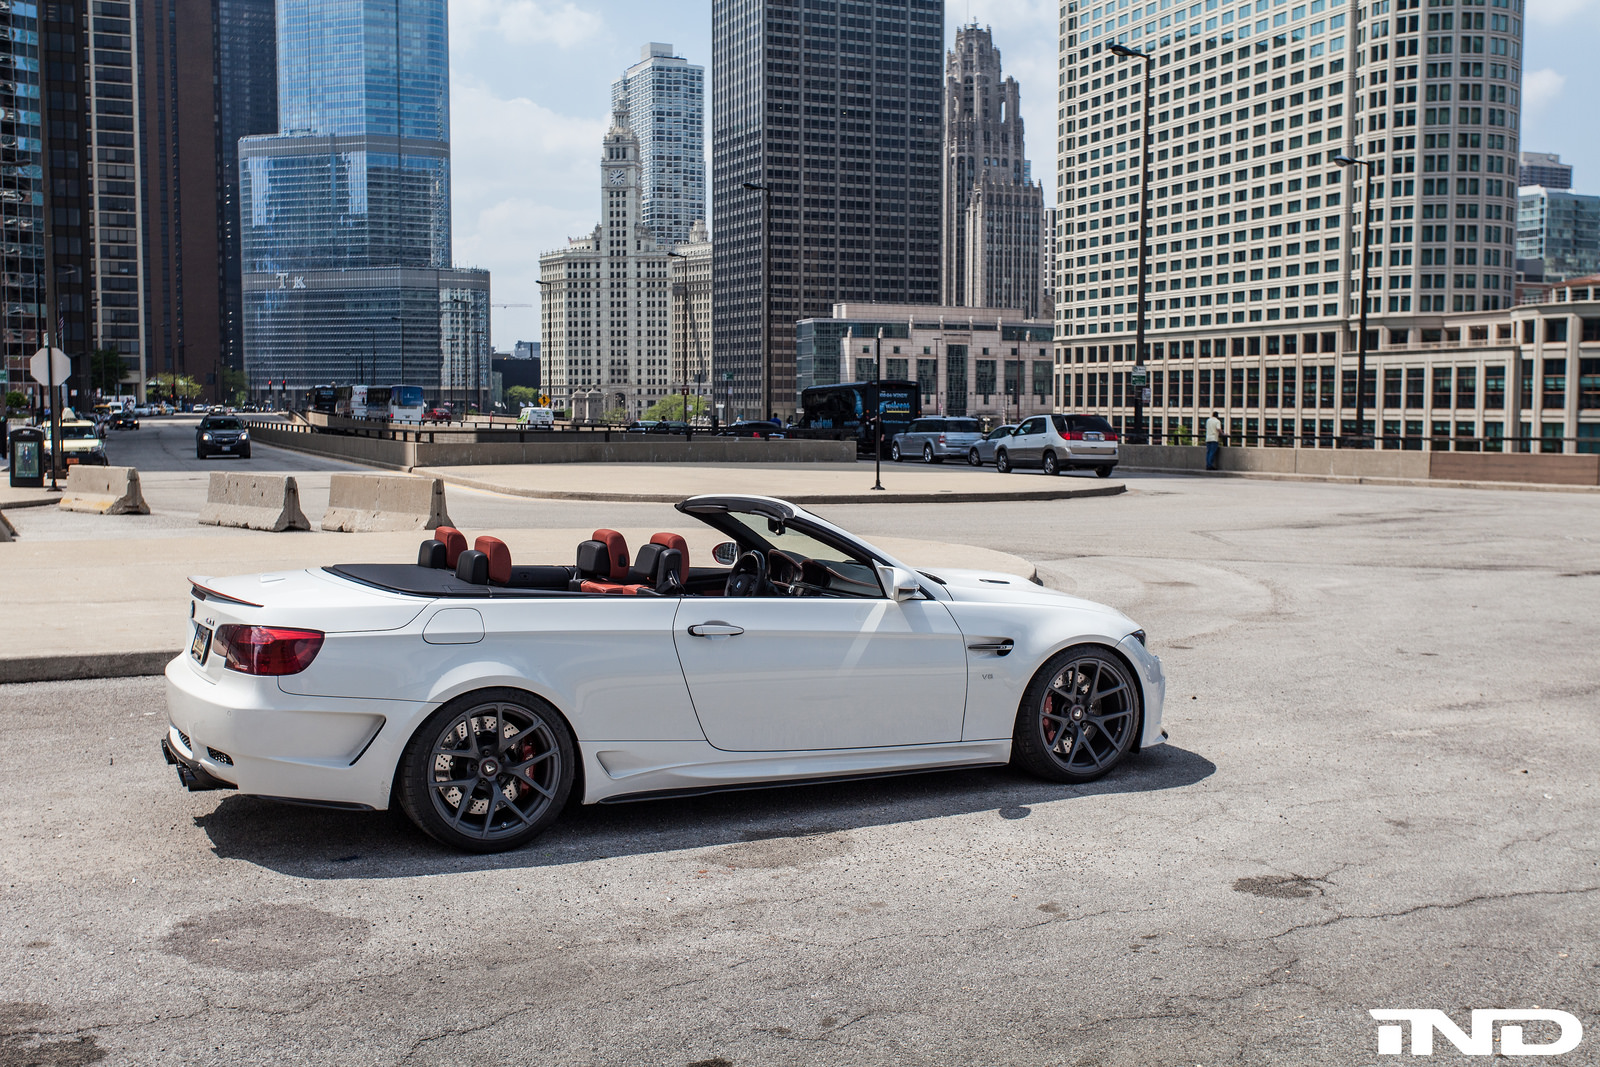 Ind S Ear To Ear M3 Convertible Is Truly One Of A Kind Autoevolution